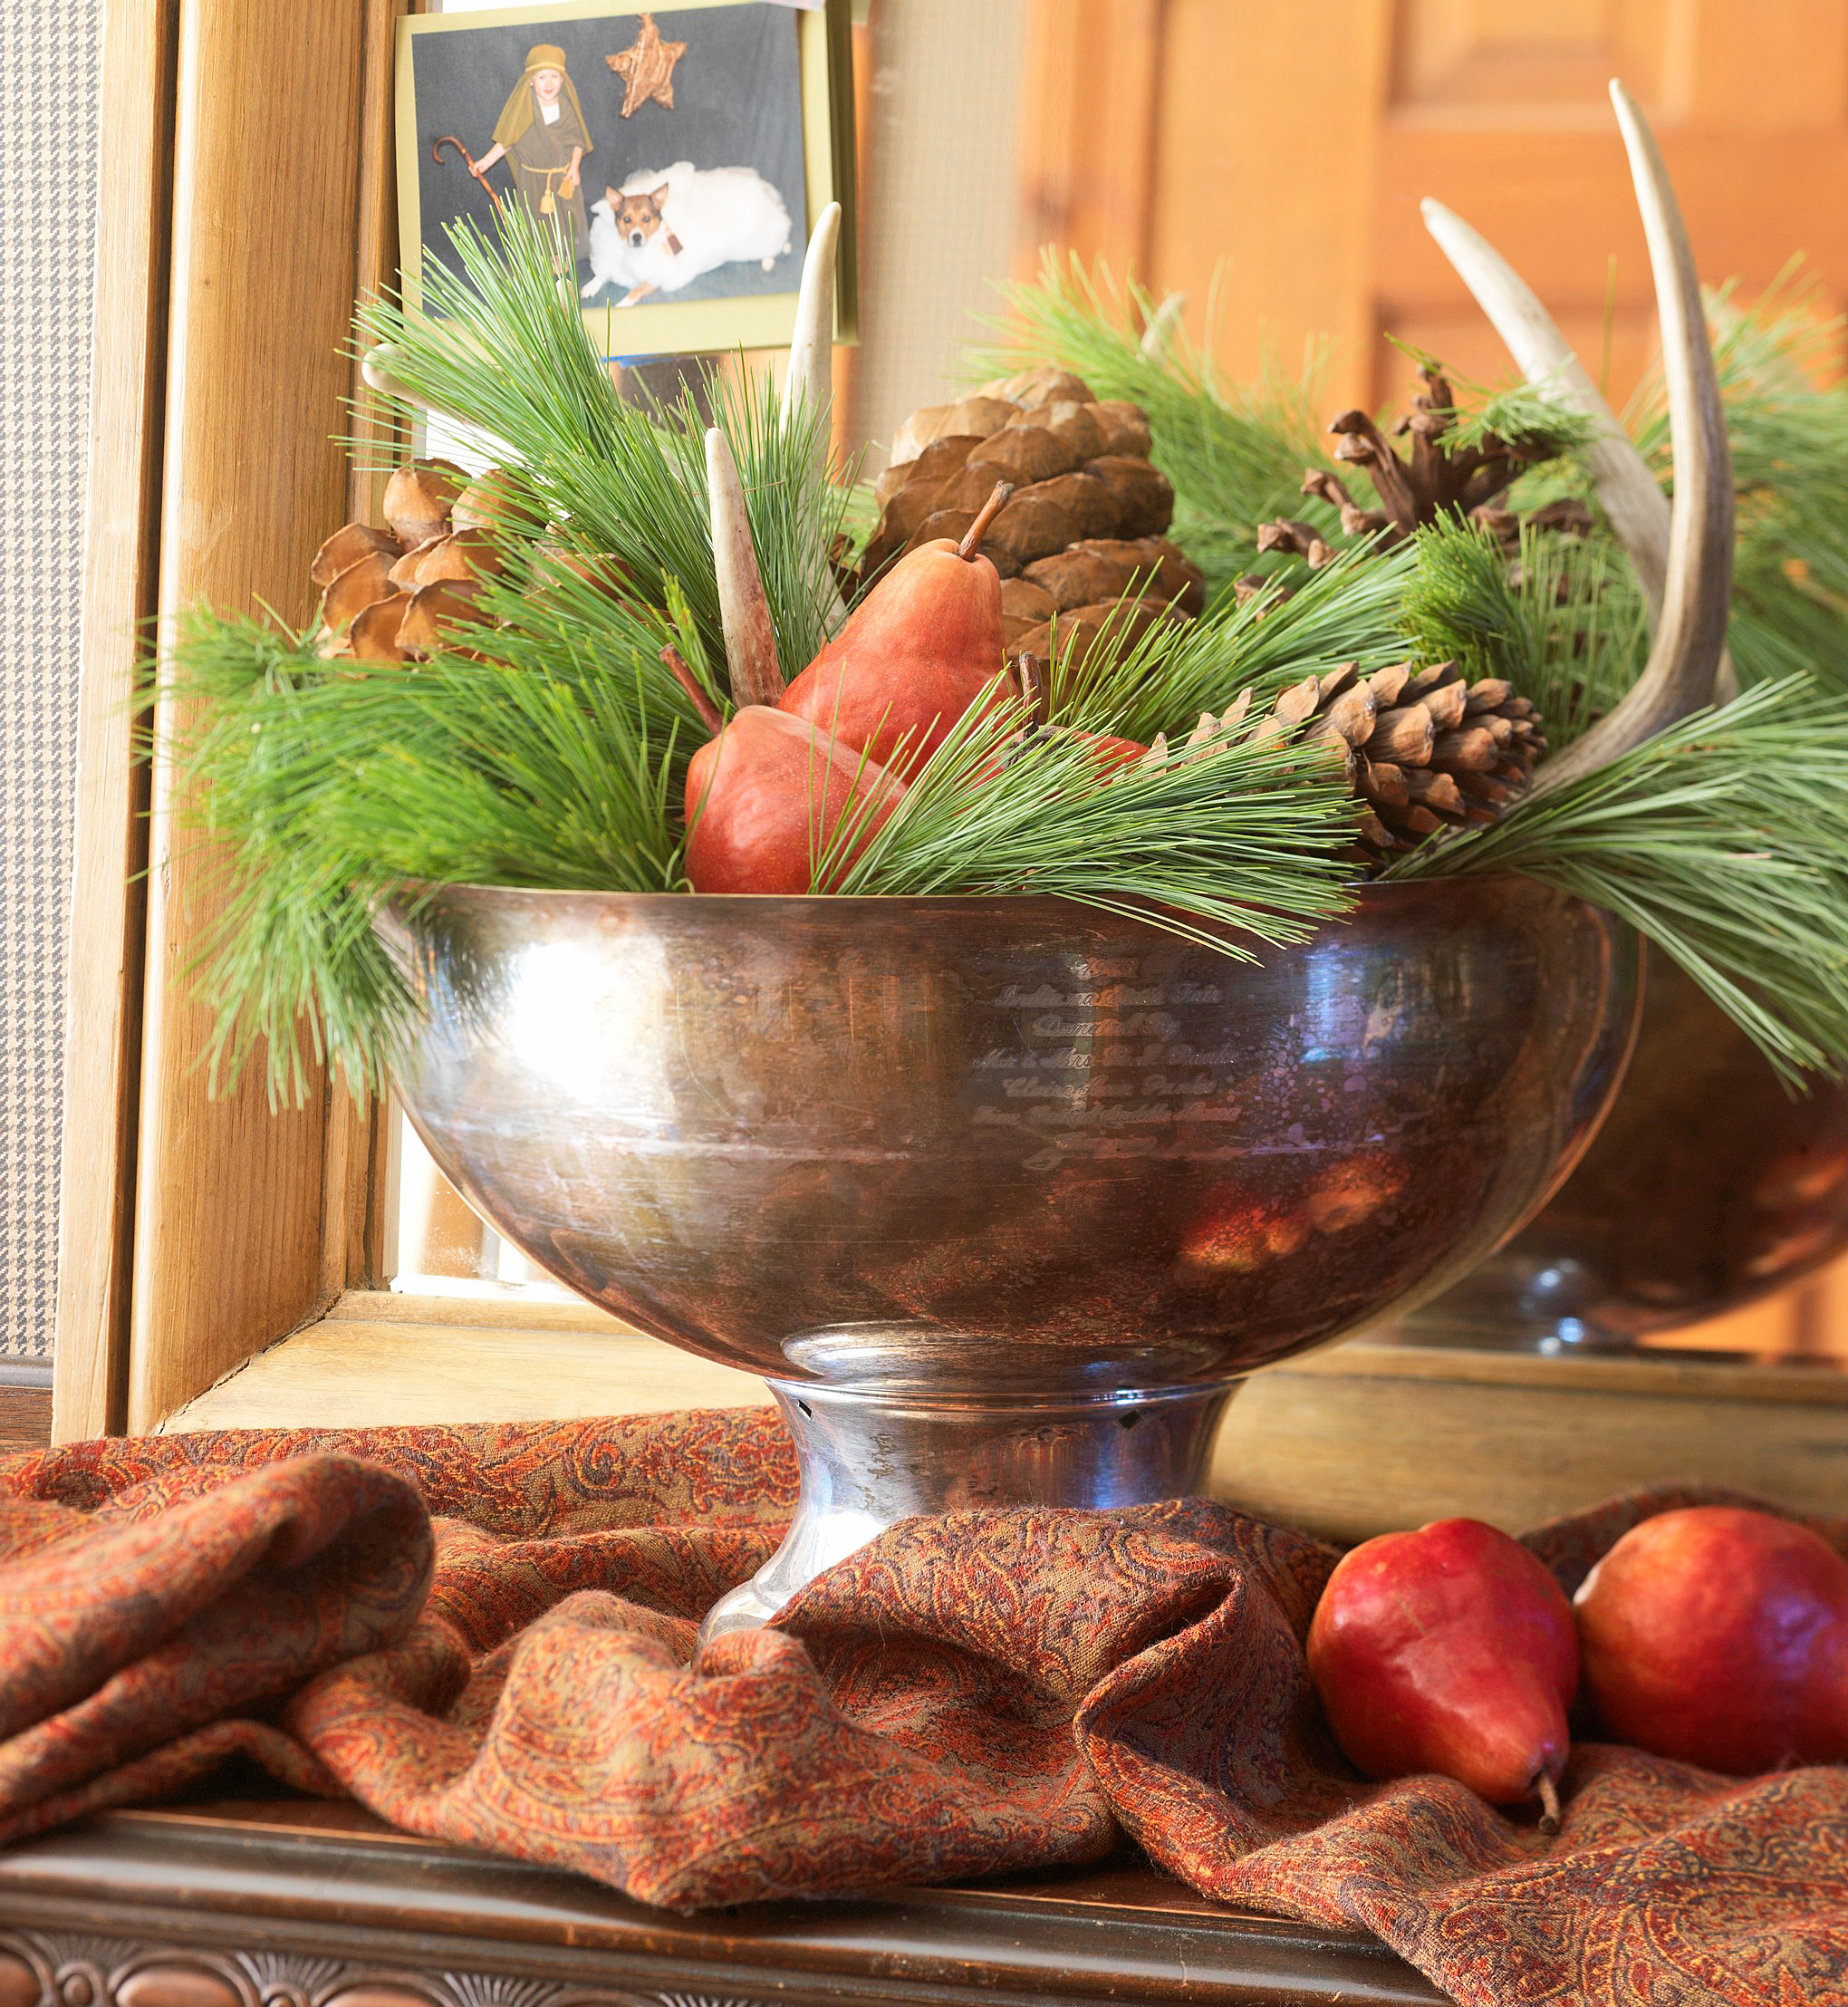 Christmas centerpiece ideas: greens and pinecones